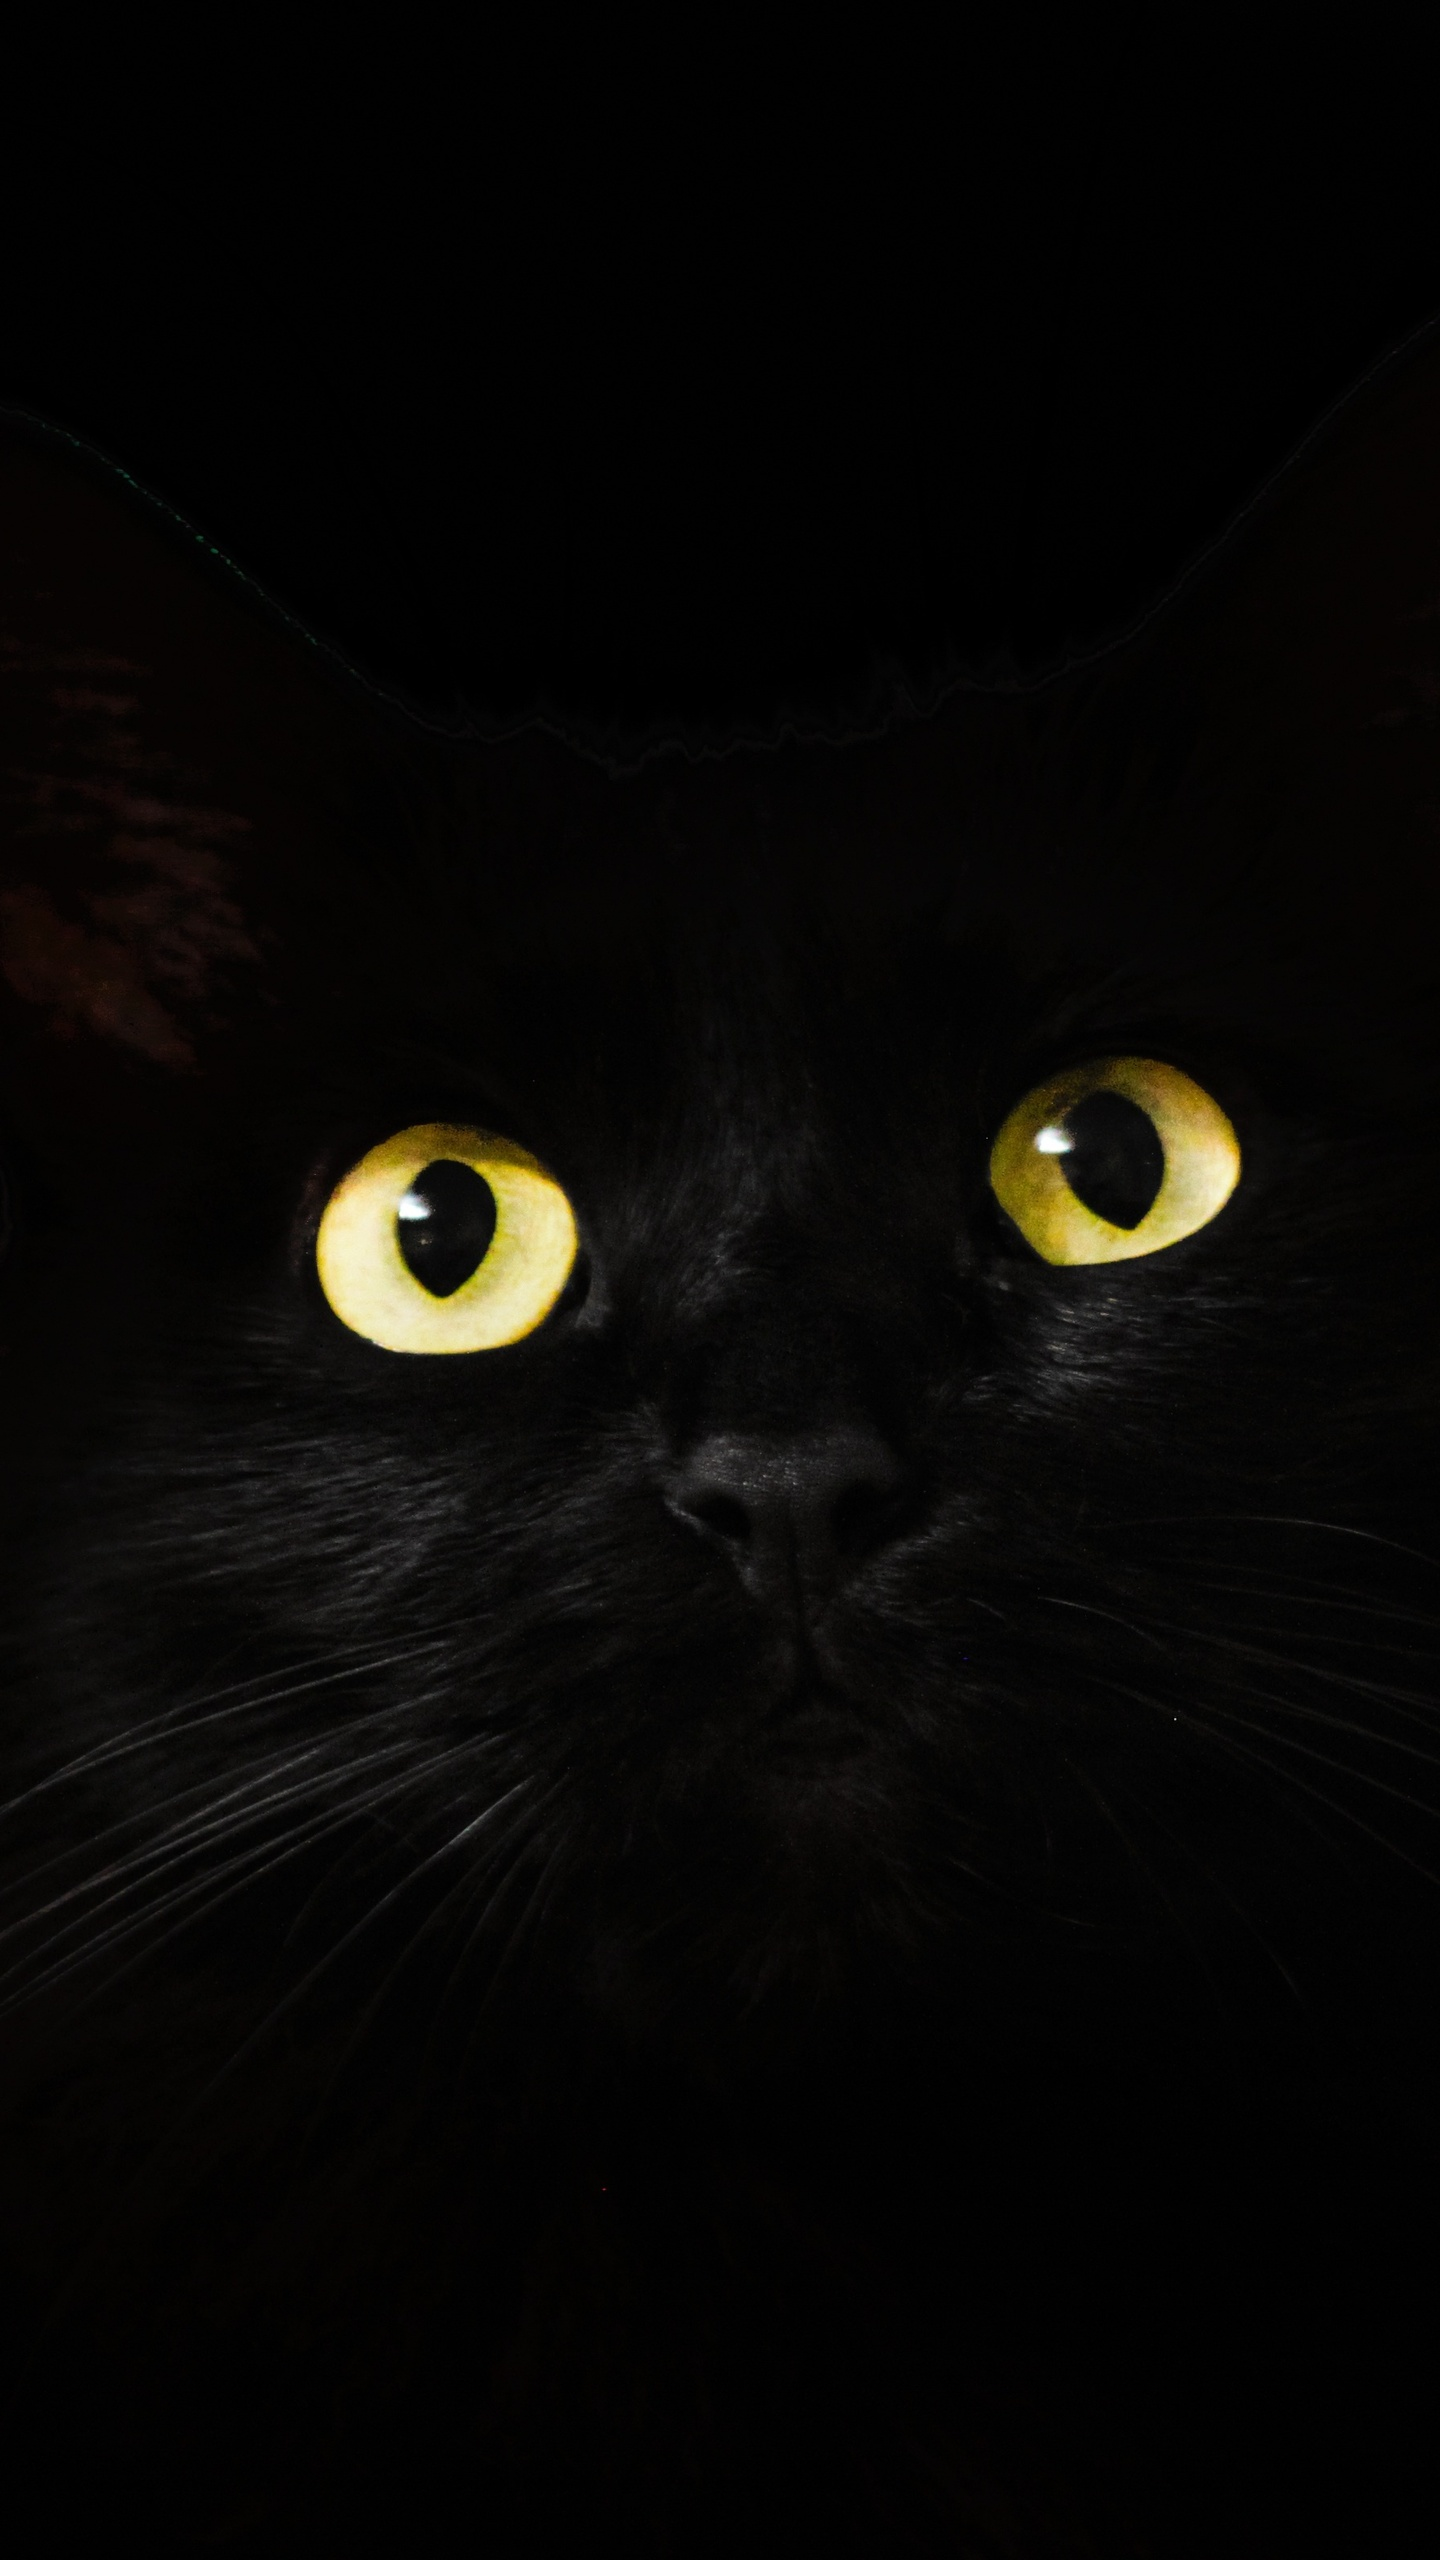 1440x2560 Black Cat Eyes Dark 5k Samsung Galaxy S6 S7 Google